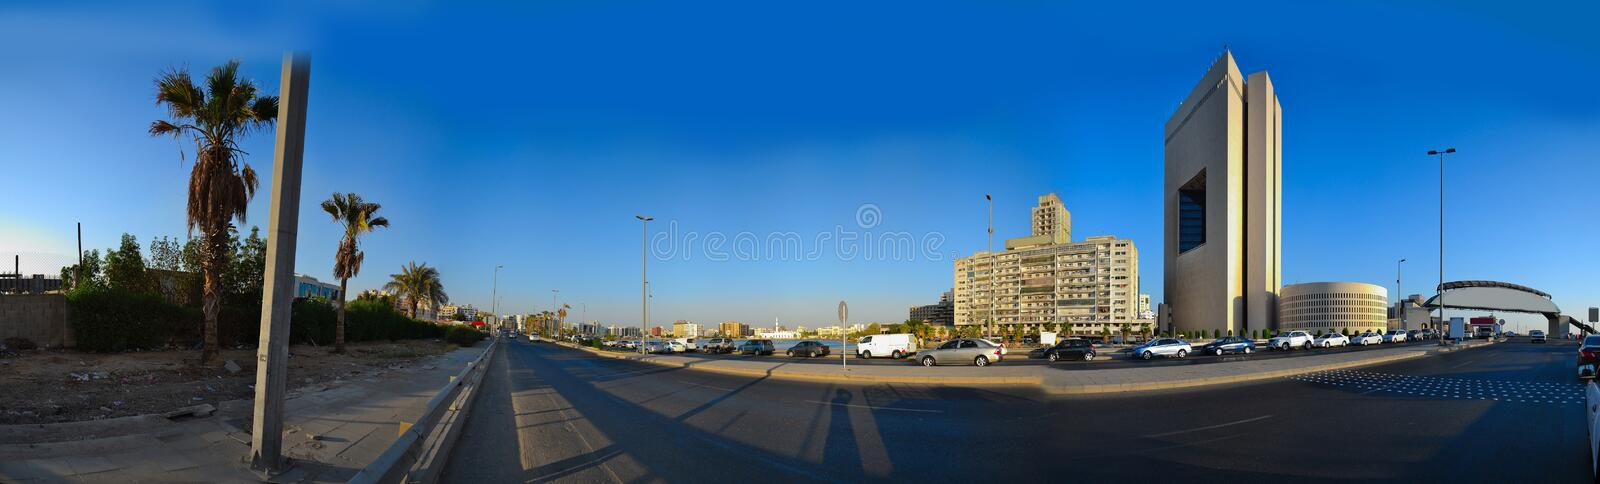 Way at Commercial center of Jeddah royalty free stock images